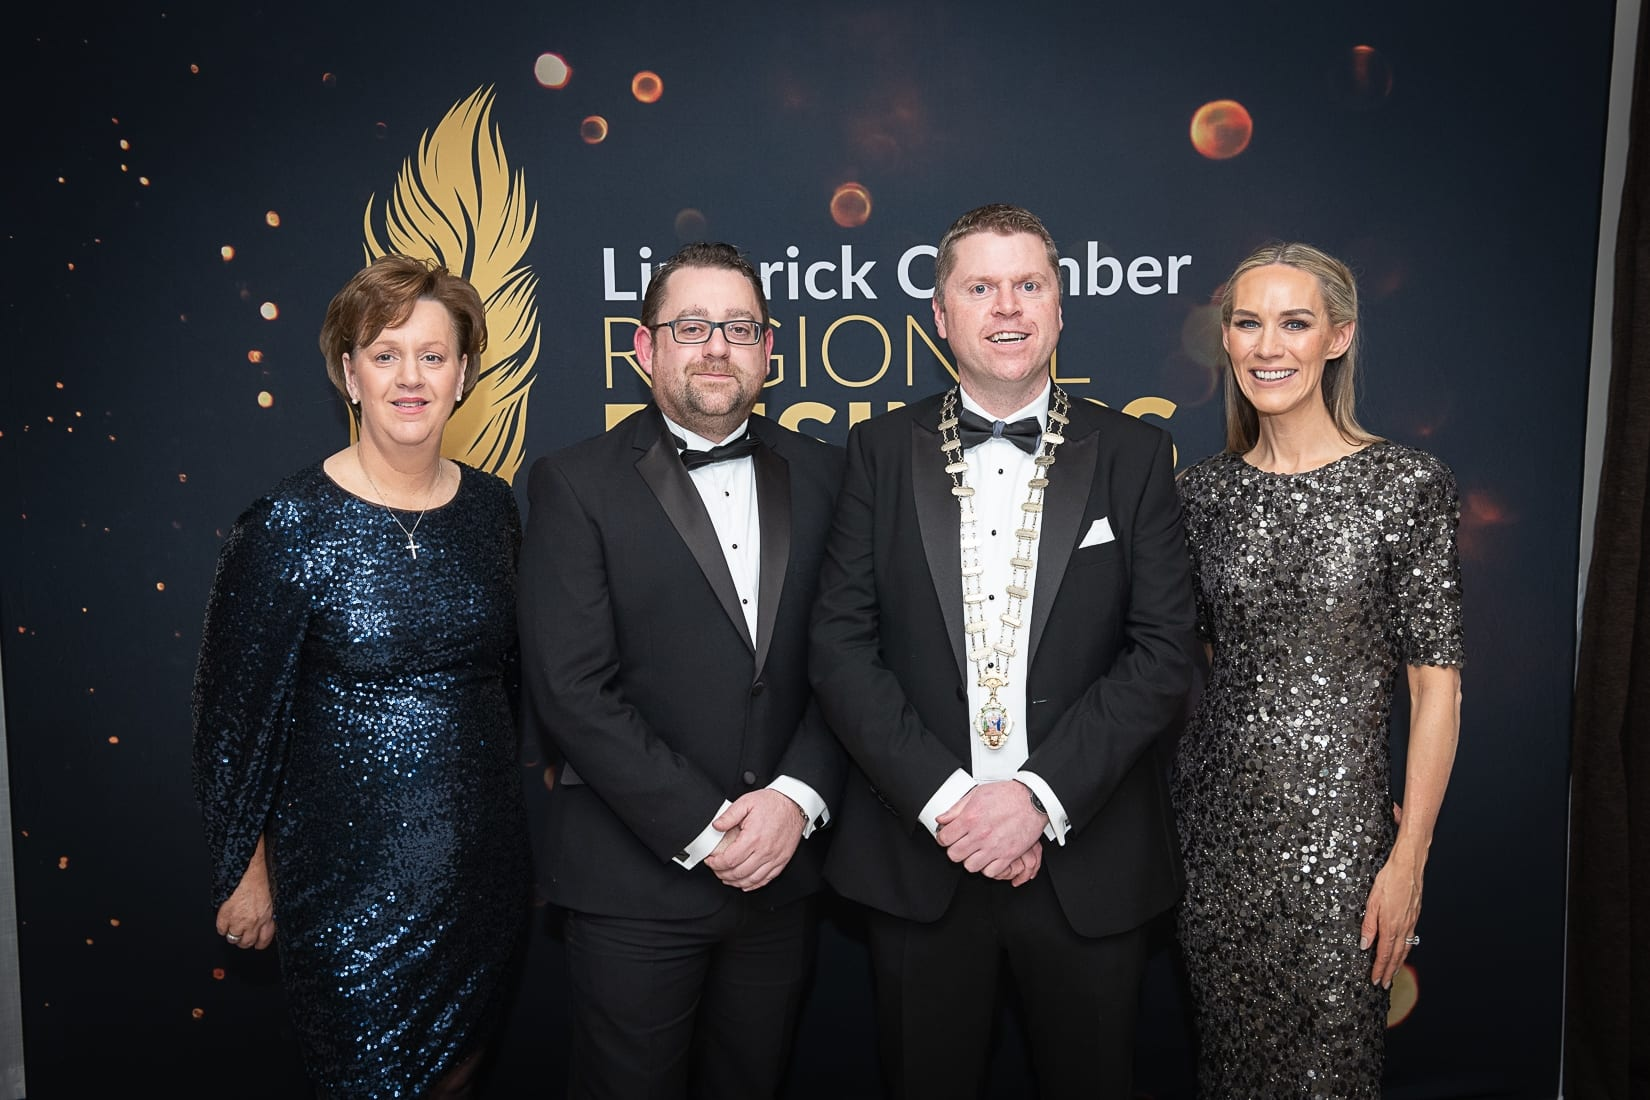 No repro fee-Limerick Chamber President's Dinner and Limerick Chamber Regional Business Awards 2019 which was held in the Strand Hotel on Friday 15th November - From Left to Right:Maria O'Gorman Skelly - Limerick Strand Hotel, Stephen O Connor - General Manager Limerick Strand Hotel,  Eoin Ryan - President Limerick Chamber, Dee Ryan - CEO Limerick Chamber Photo credit Shauna Kennedy